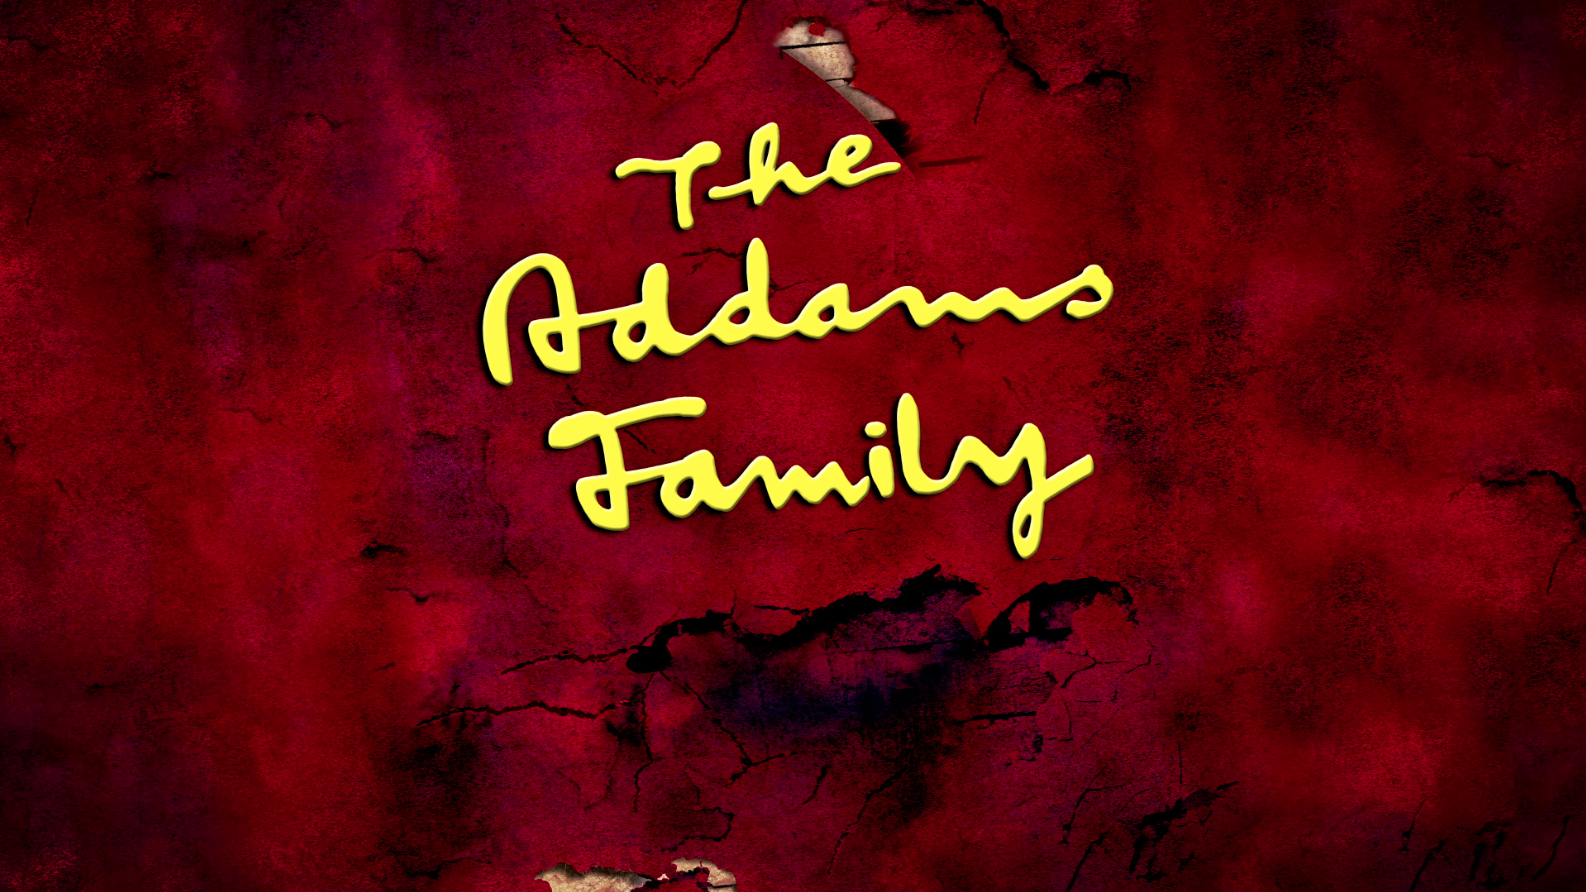 addams_title.png